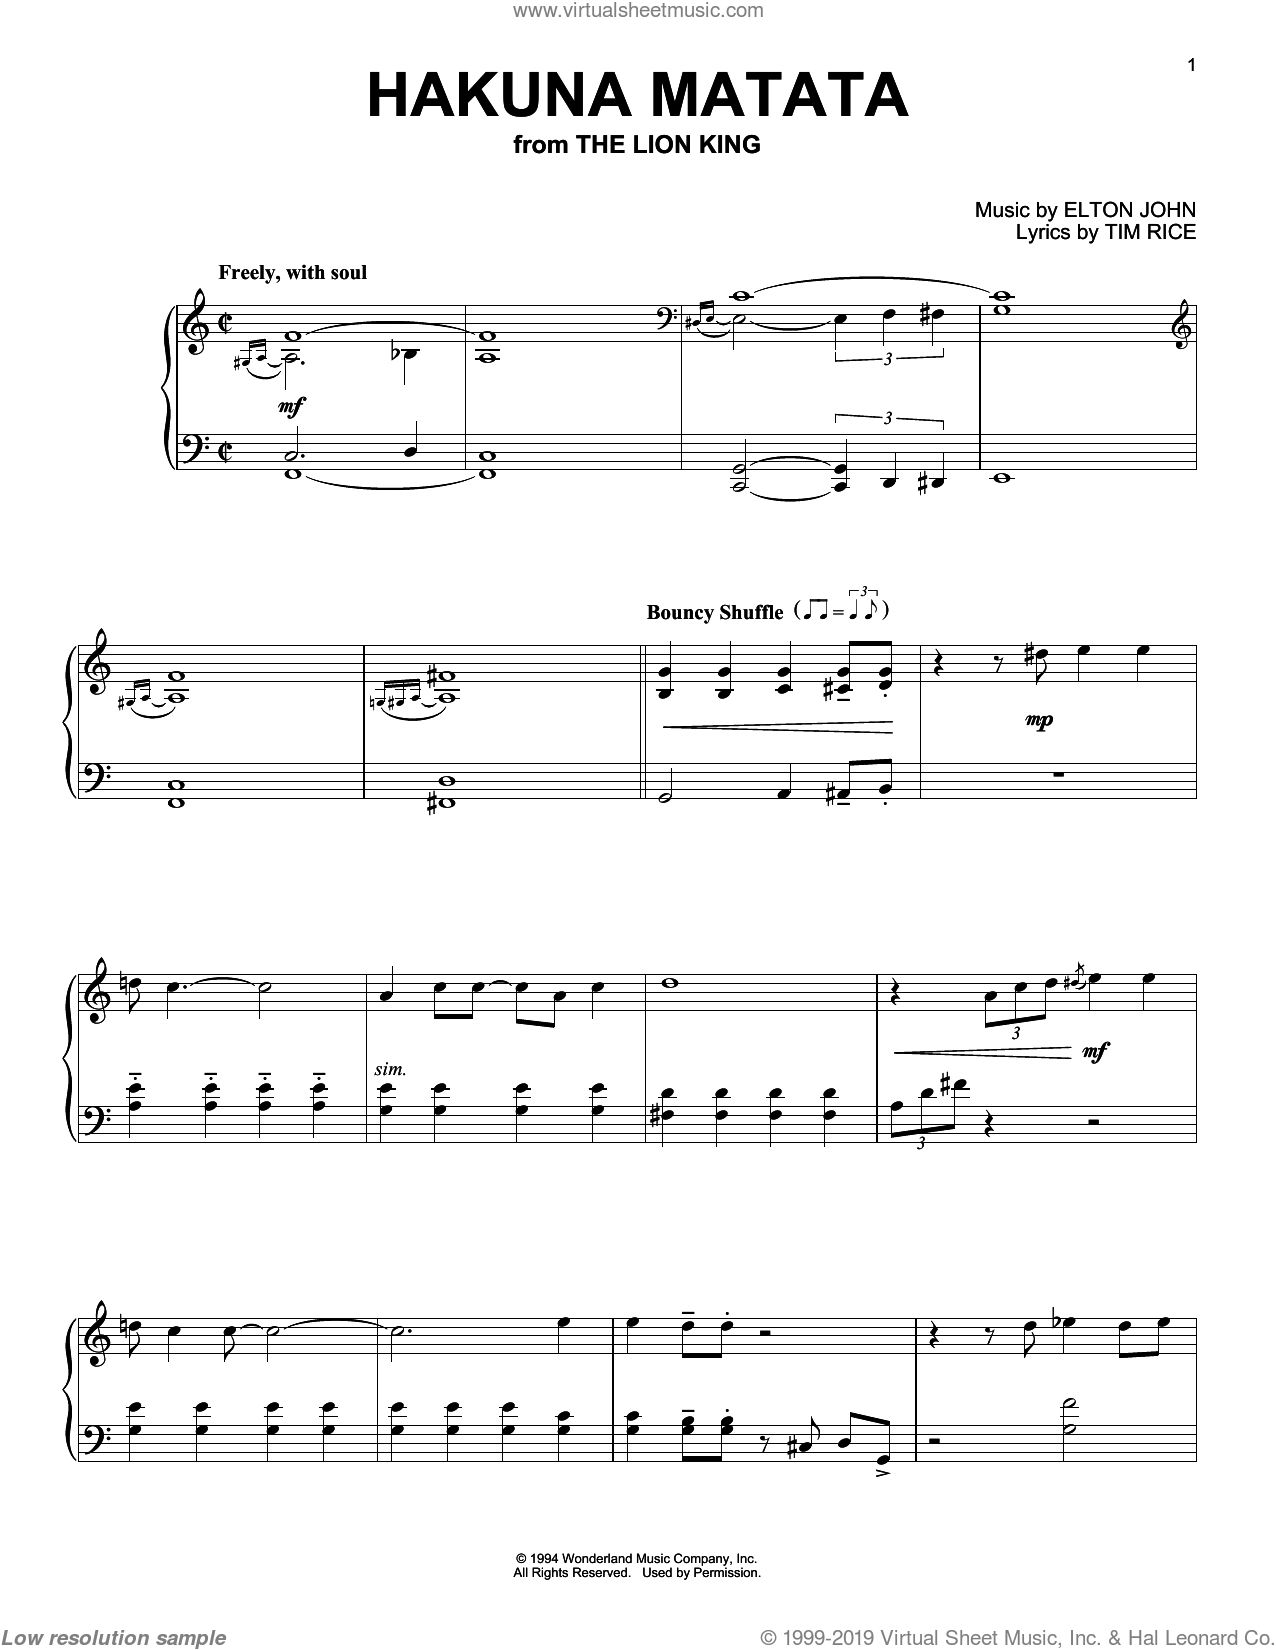 Hakuna Matata sheet music for piano solo by Tim Rice